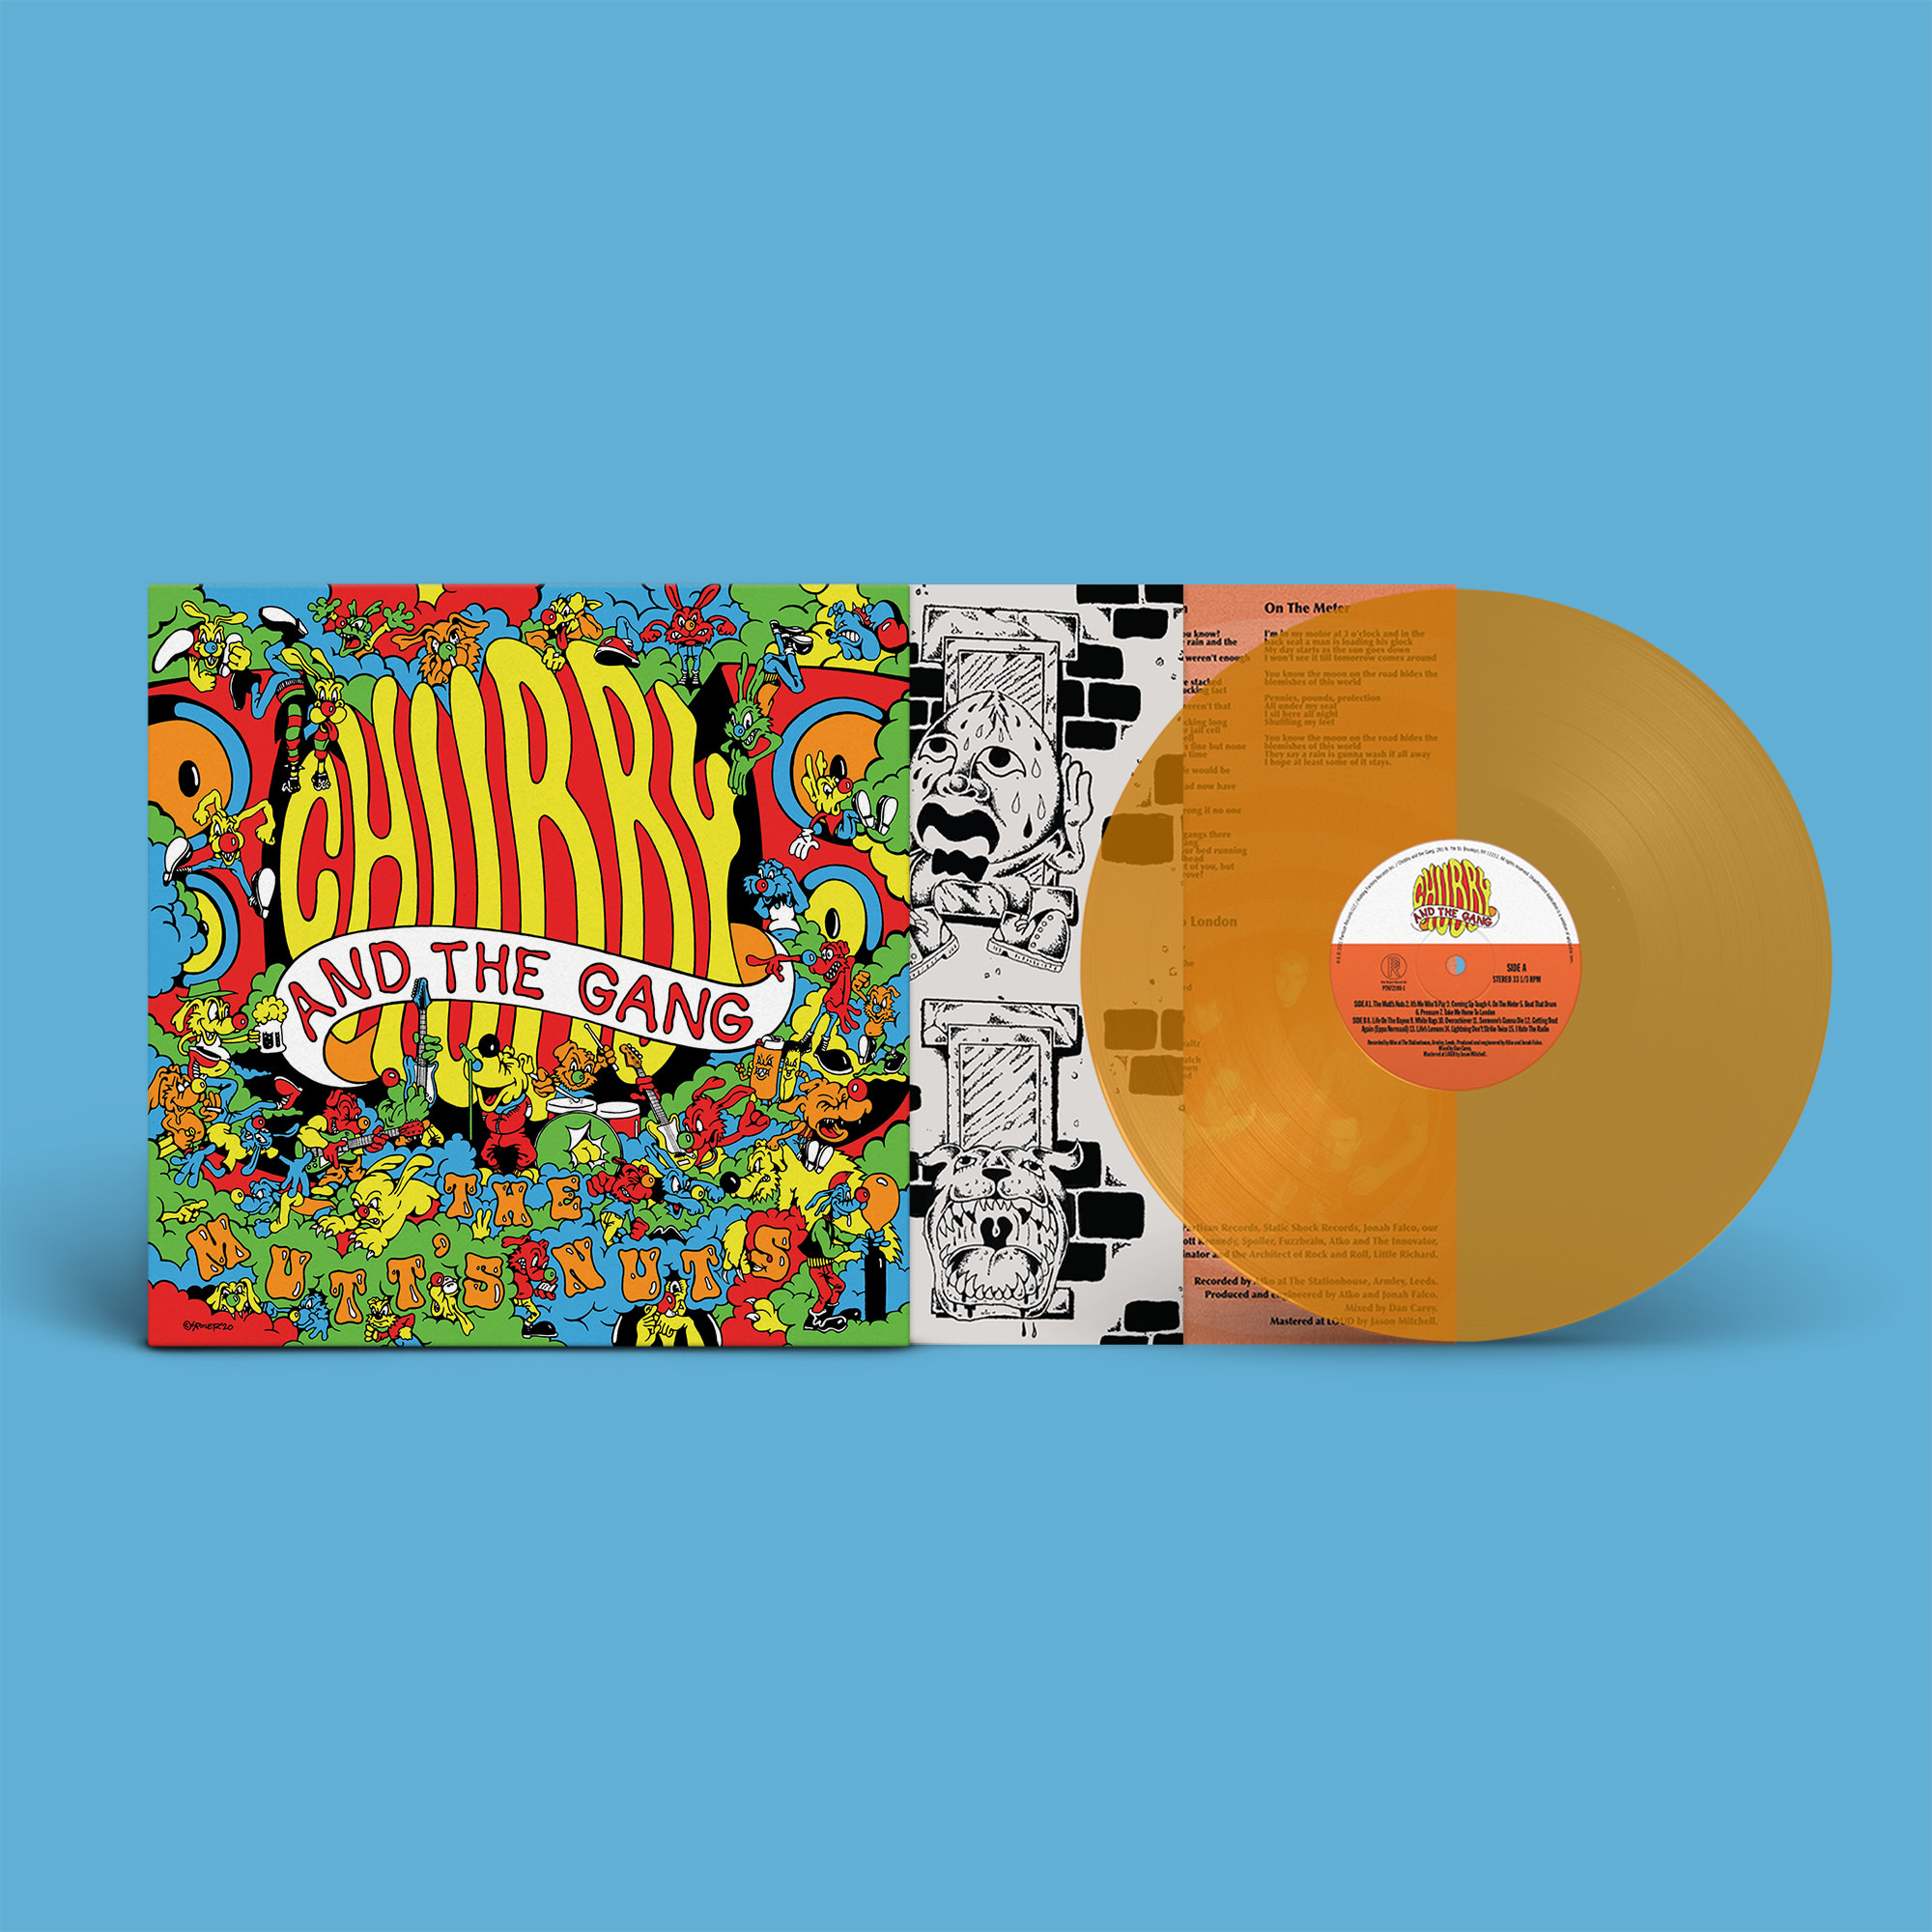 Partisan Records Chubby and the Gang - The Mutt's Nuts SIGNED (Coloured Vinyl)